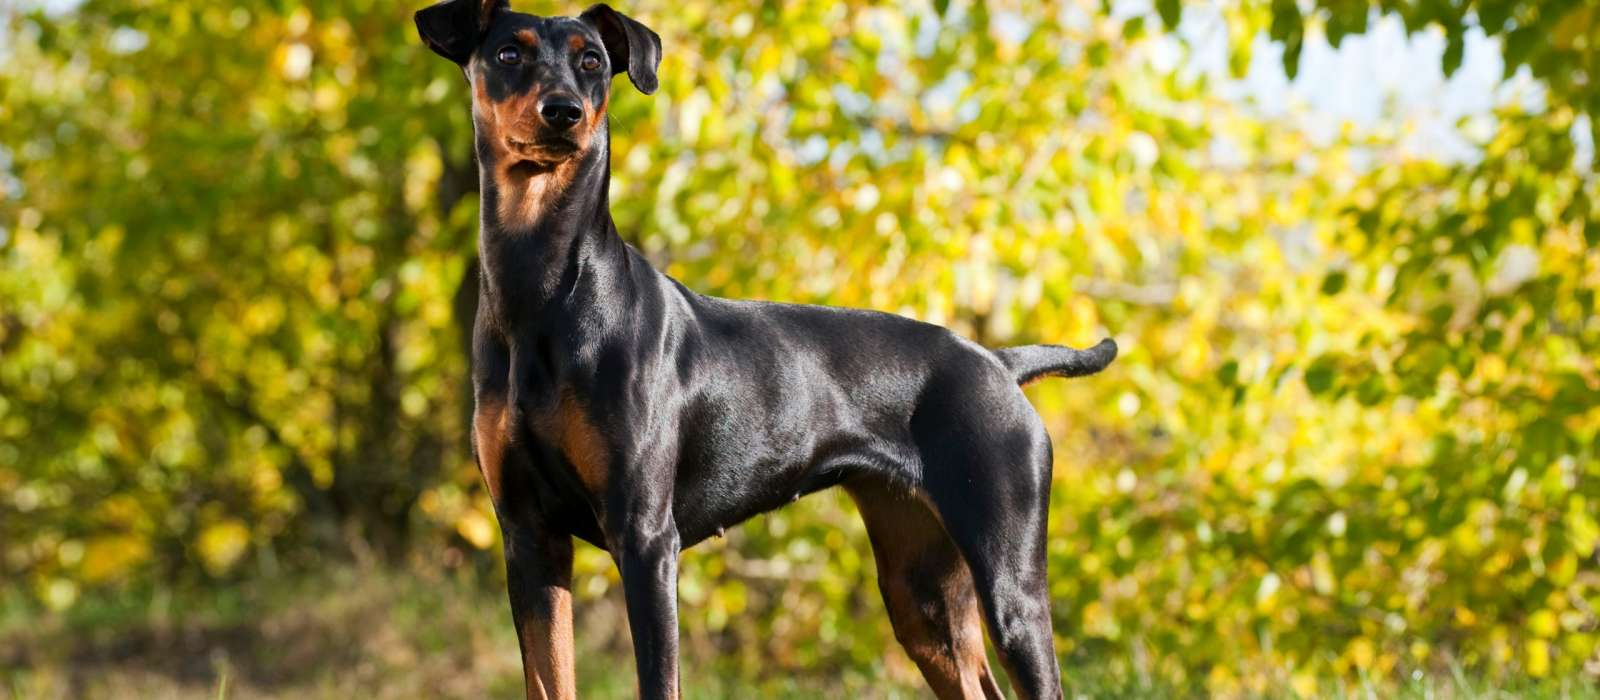 German Pinscher standing in a sunny field